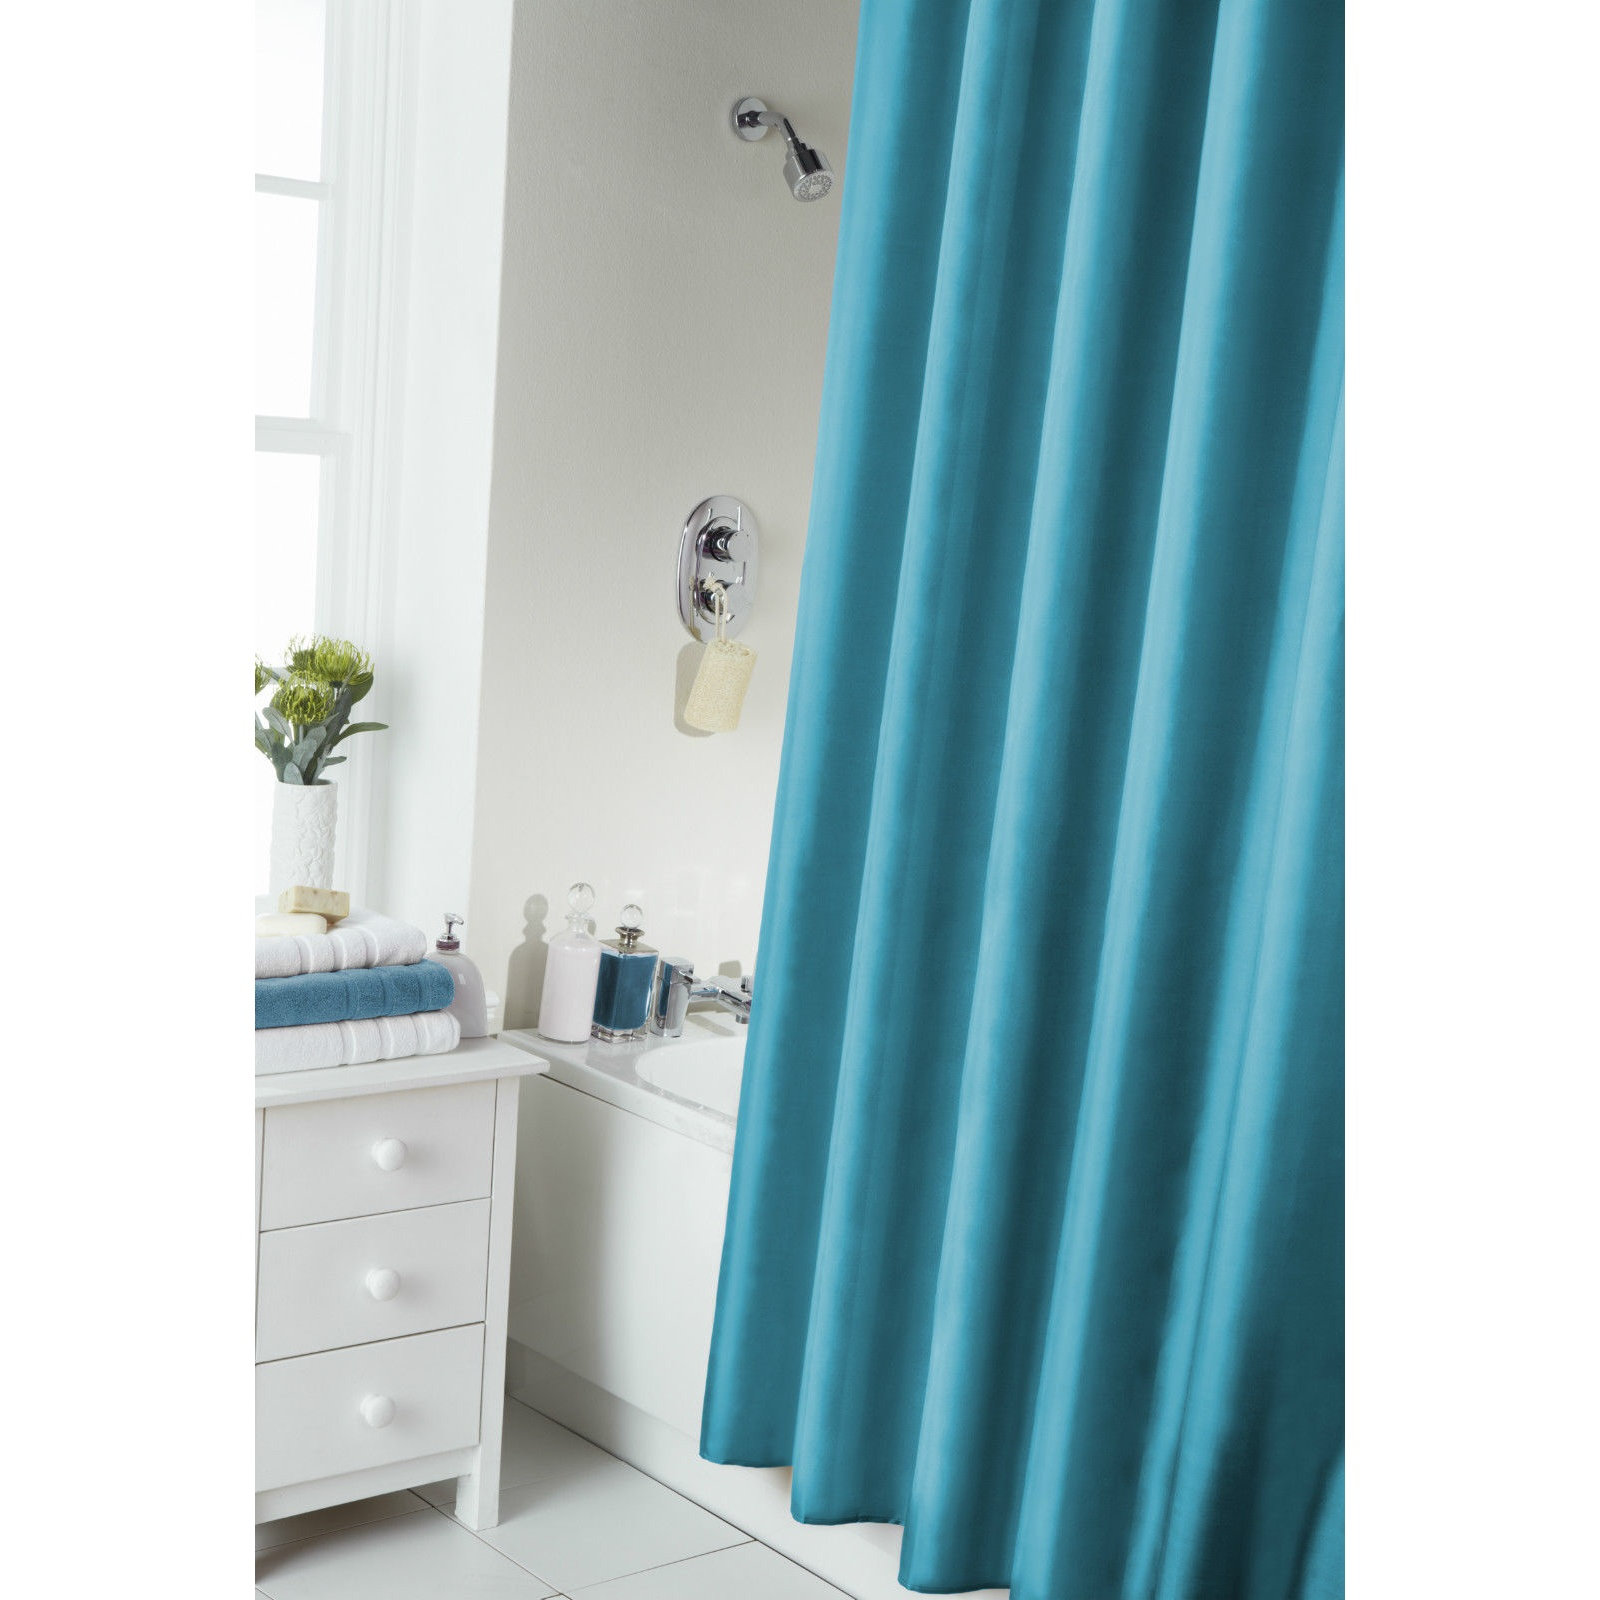 Plain Modern Shower Bath Curtain With Rail Rings 8 Colours Bathroom Ebay